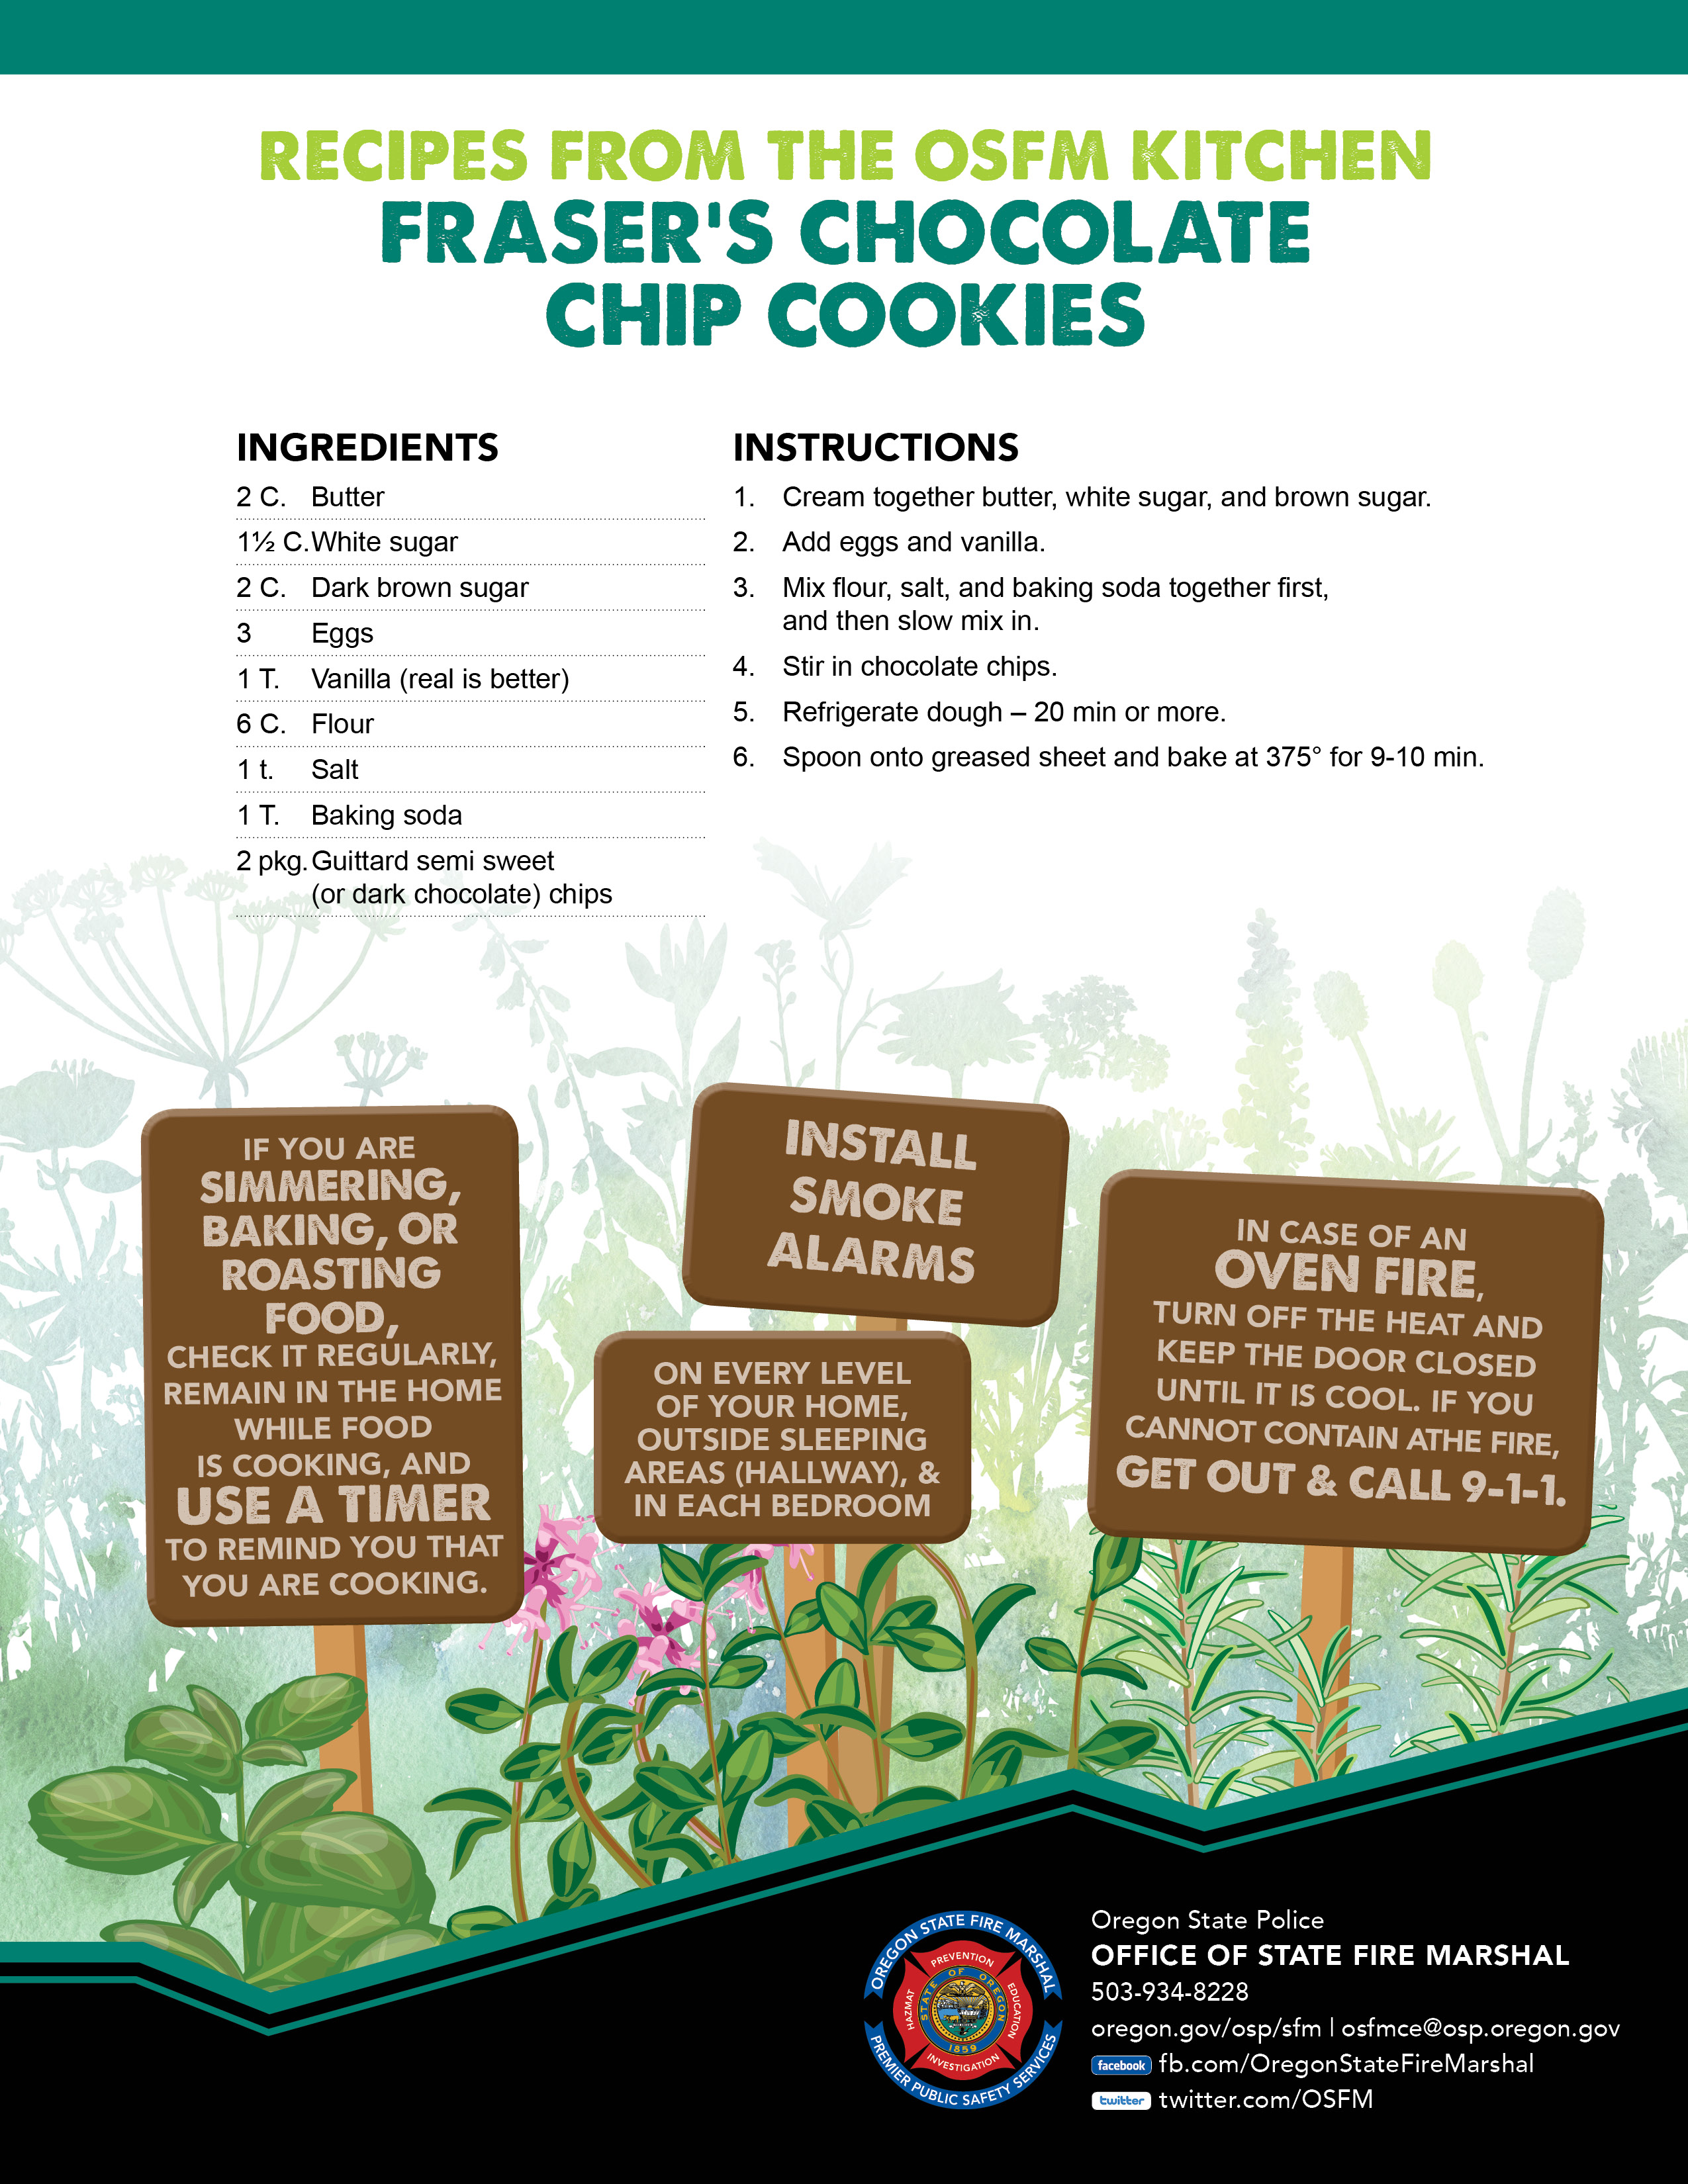 CookingSafety-Recipes-ChocChipCookies.jpg